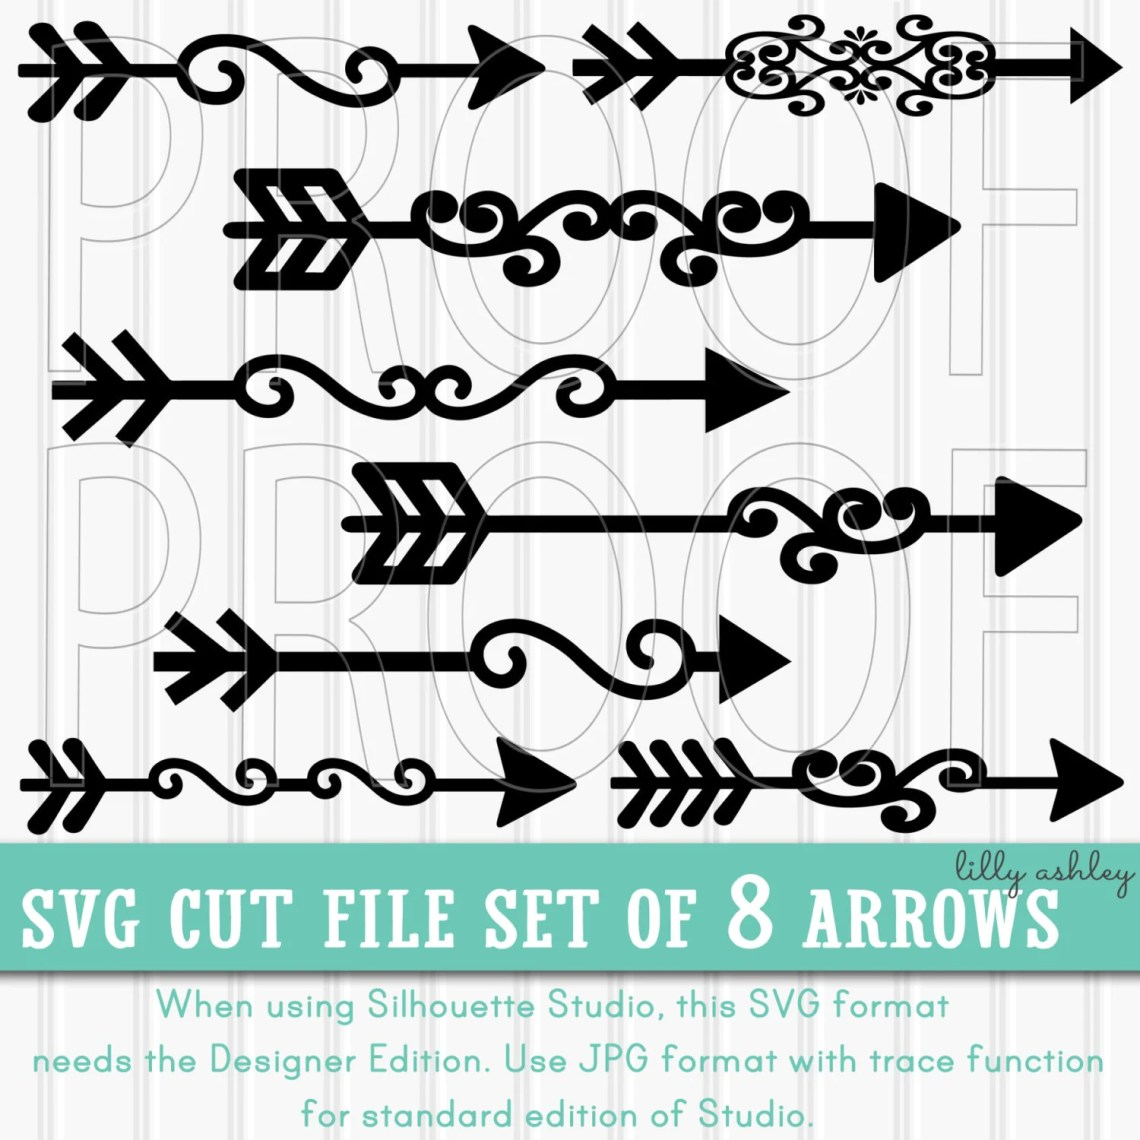 Download Arrow SVG Cut File Set of 8-Commercial use ok Includes PNG